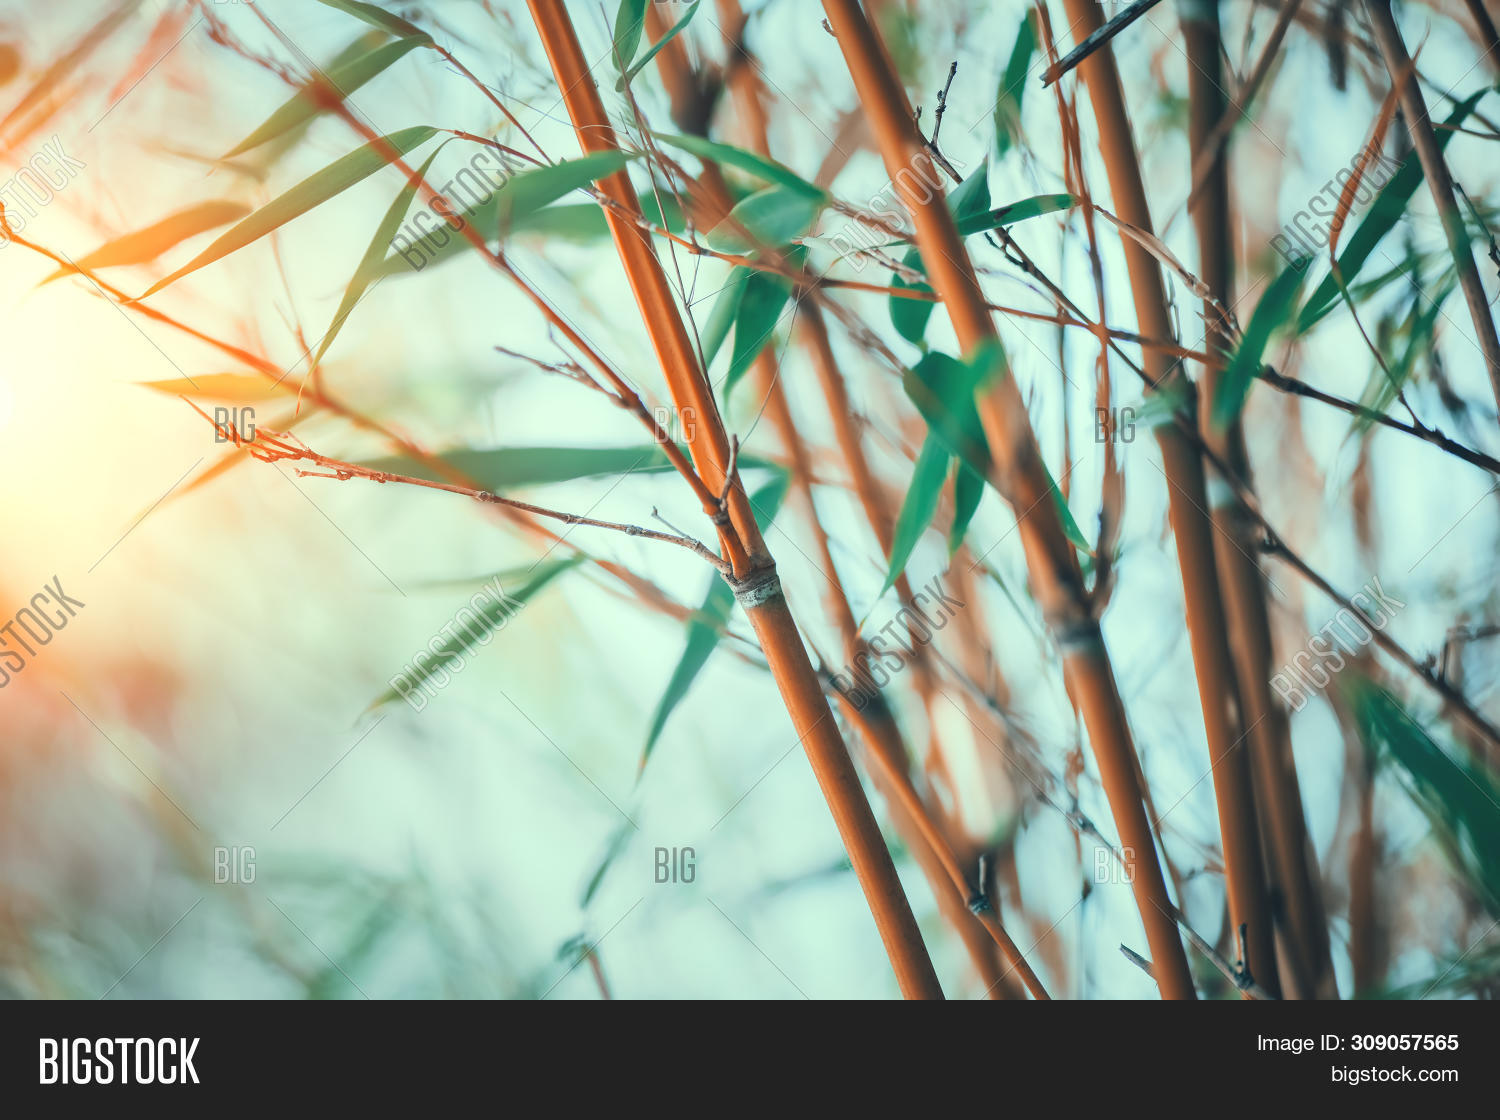 Bamboo. Bamboos Forest Image & Photo (Free Trial) | Bigstock